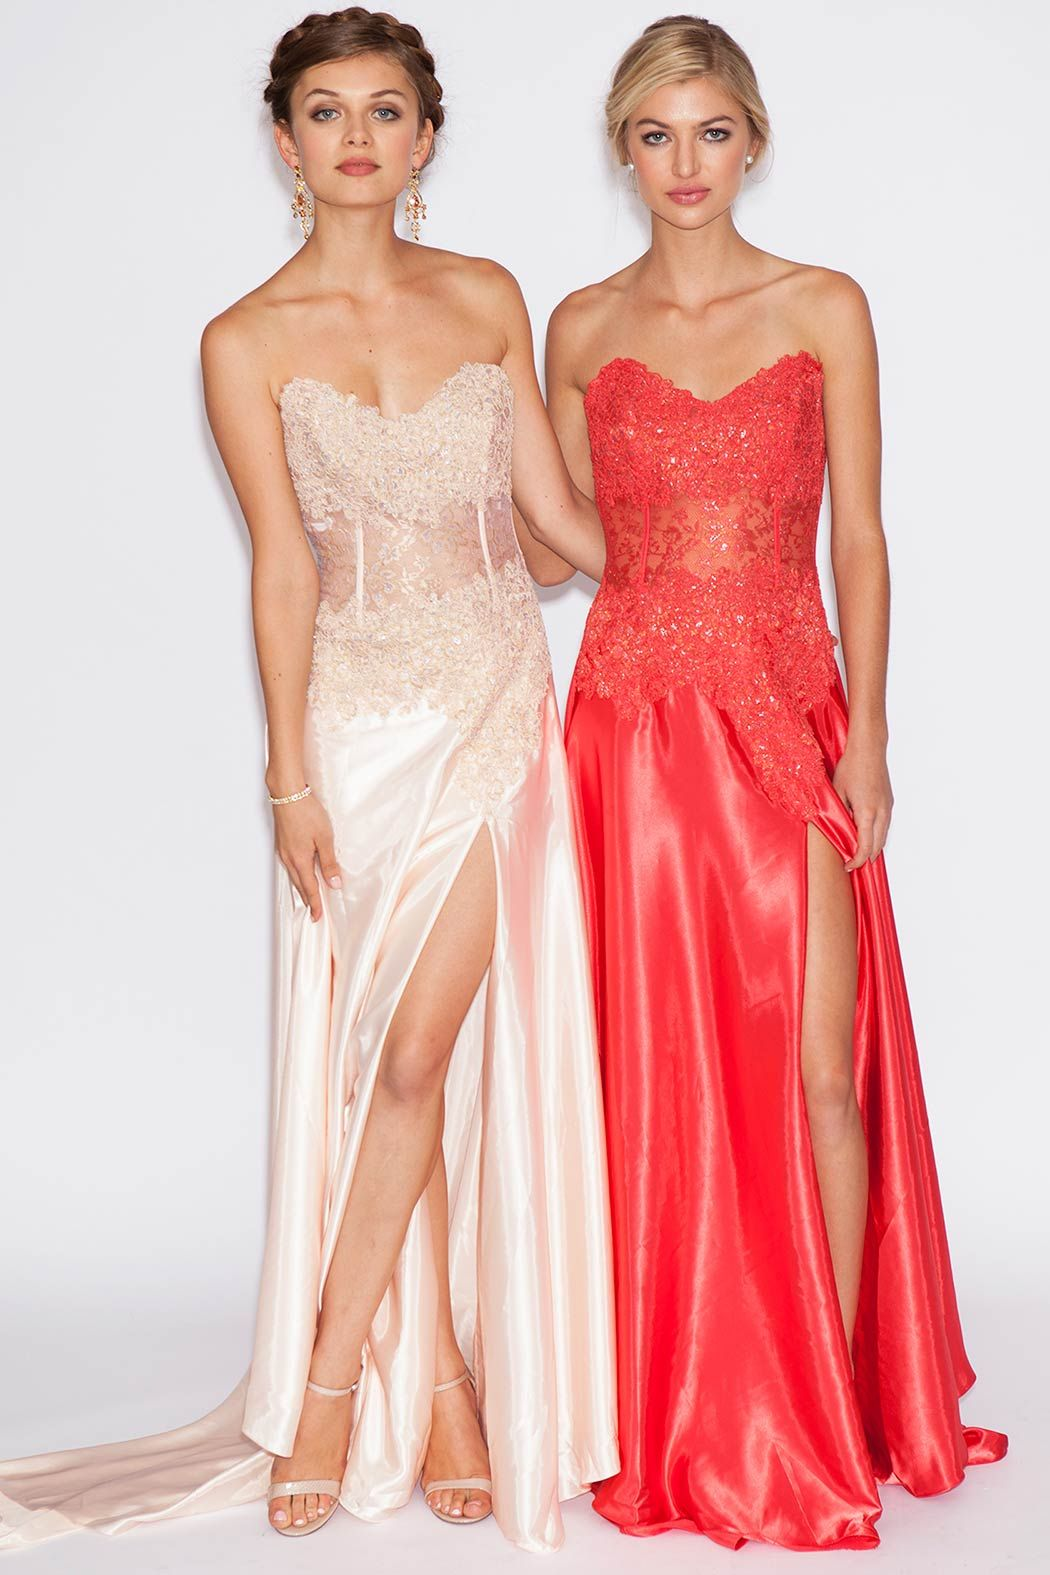 Prom Dresses & Gowns by Jovani - Always Best Dressed | Pinterest